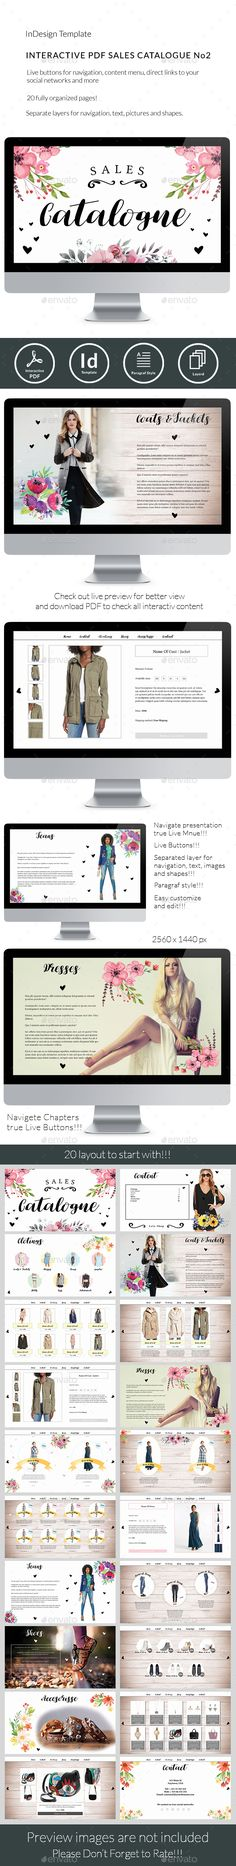 30 best interactive pdf portfolio presentation images on pinterest